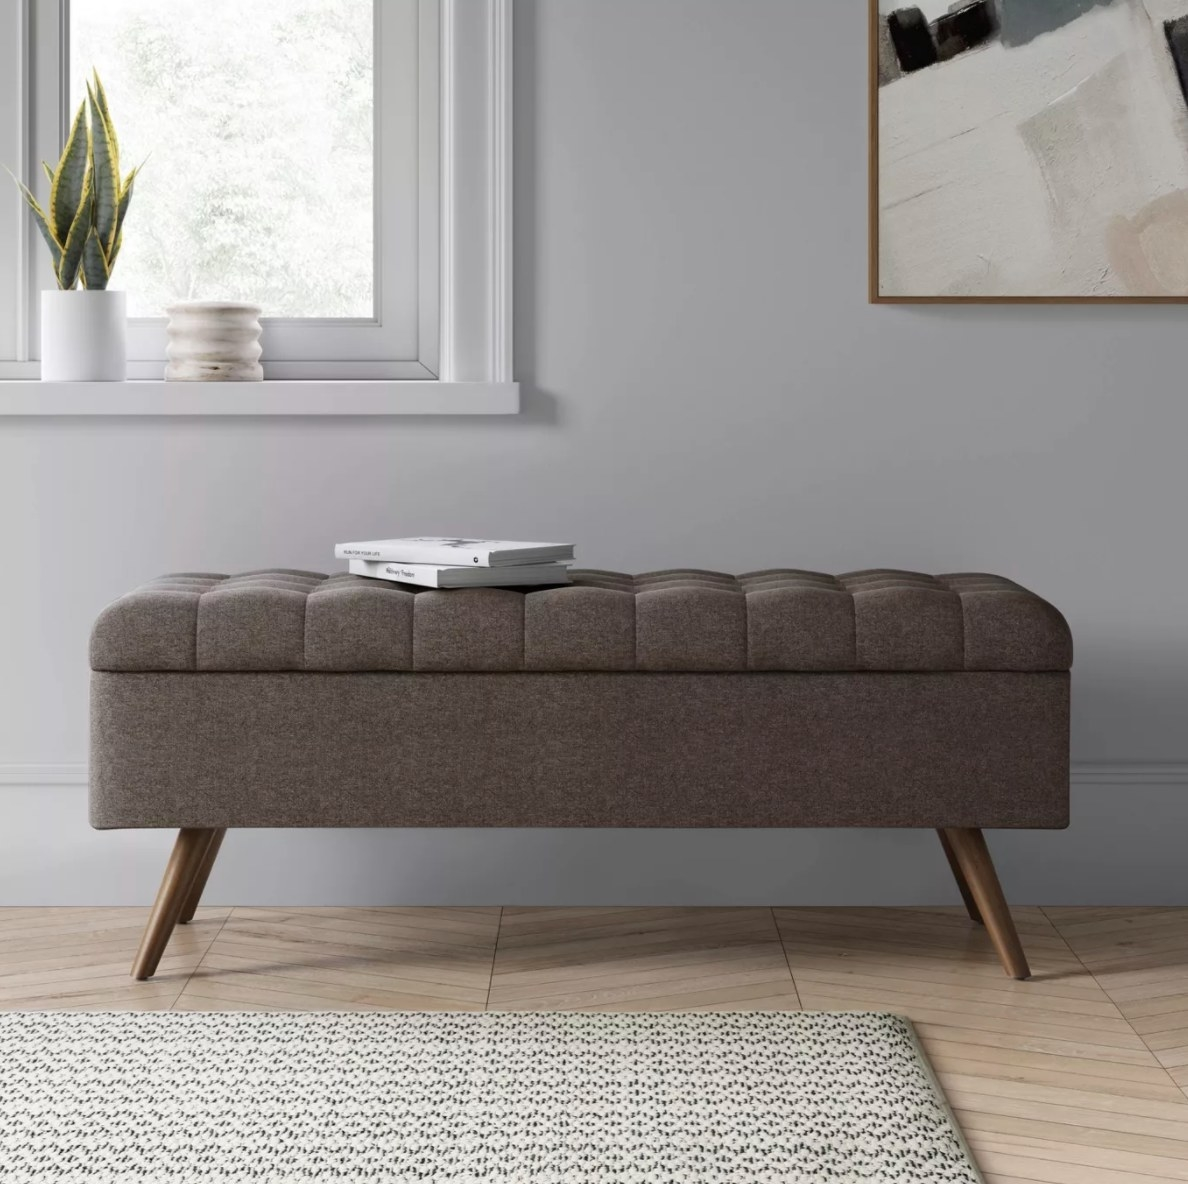 A gray tufted storage bench with wooden legs